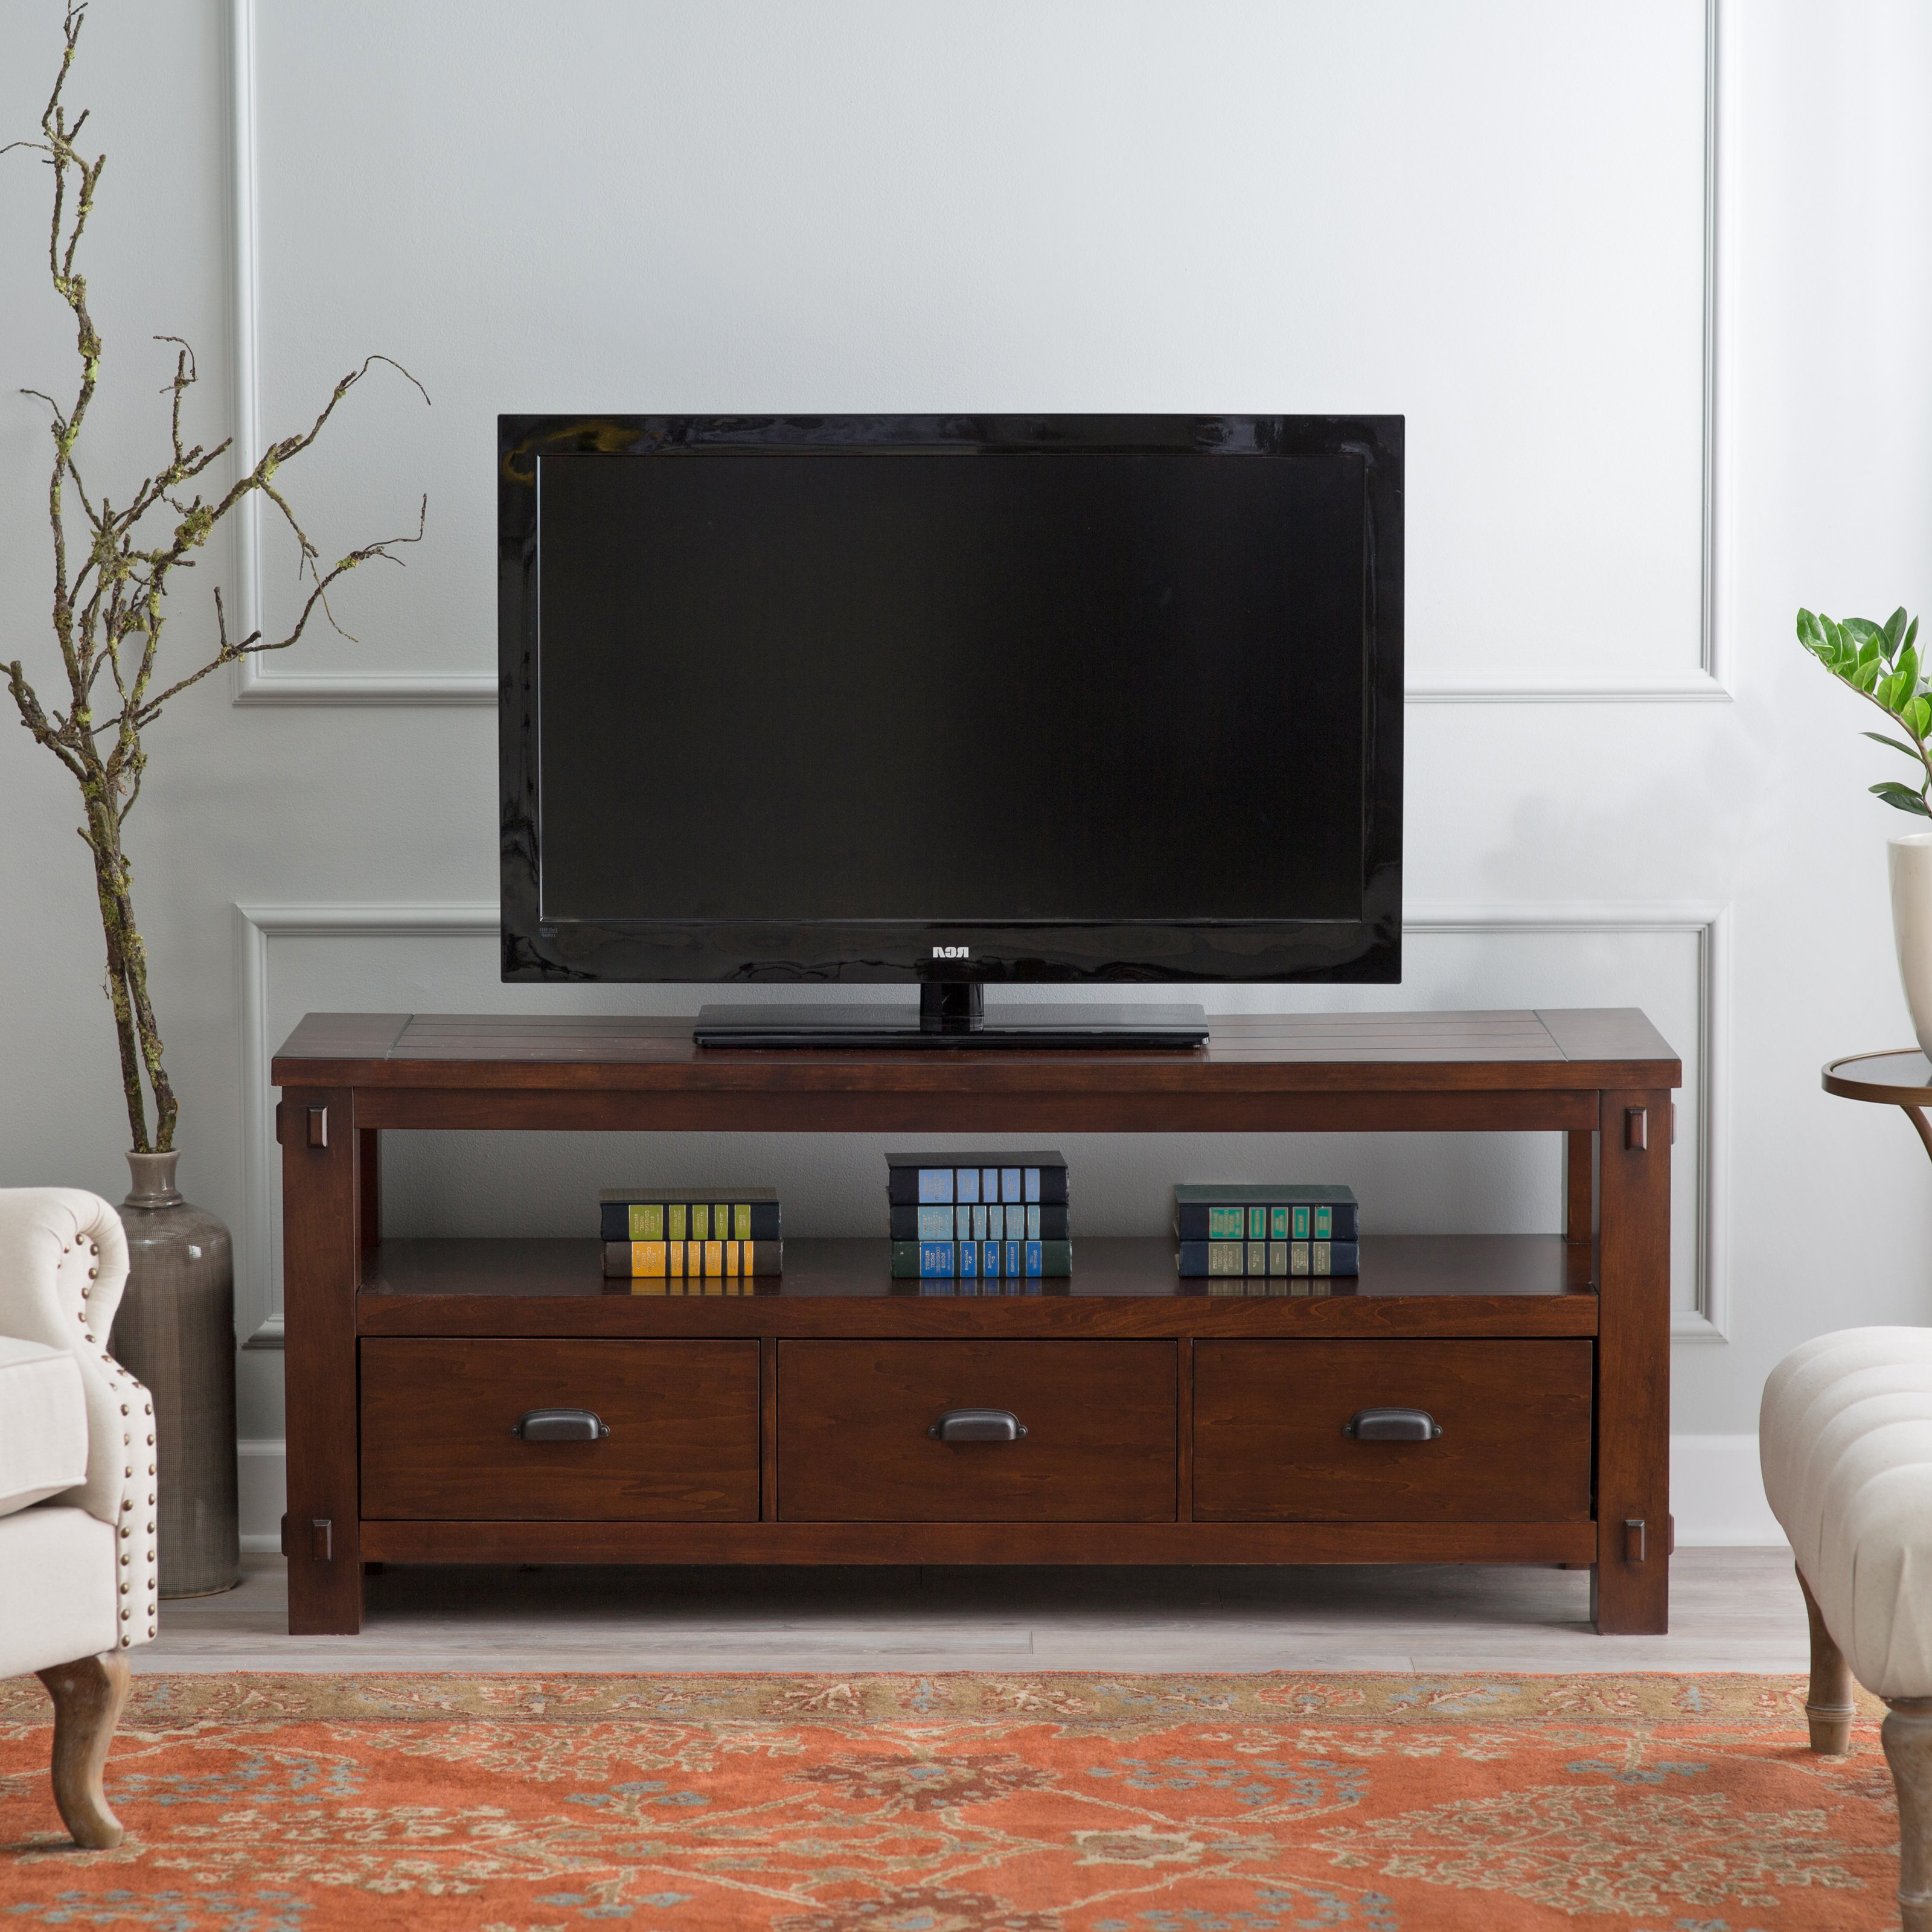 Tall Narrow Tv Stands Inside 2017 Bedroom Narrow Tv Stand For Bedroom Tall Tv Cabinets For Flat (View 20 of 20)